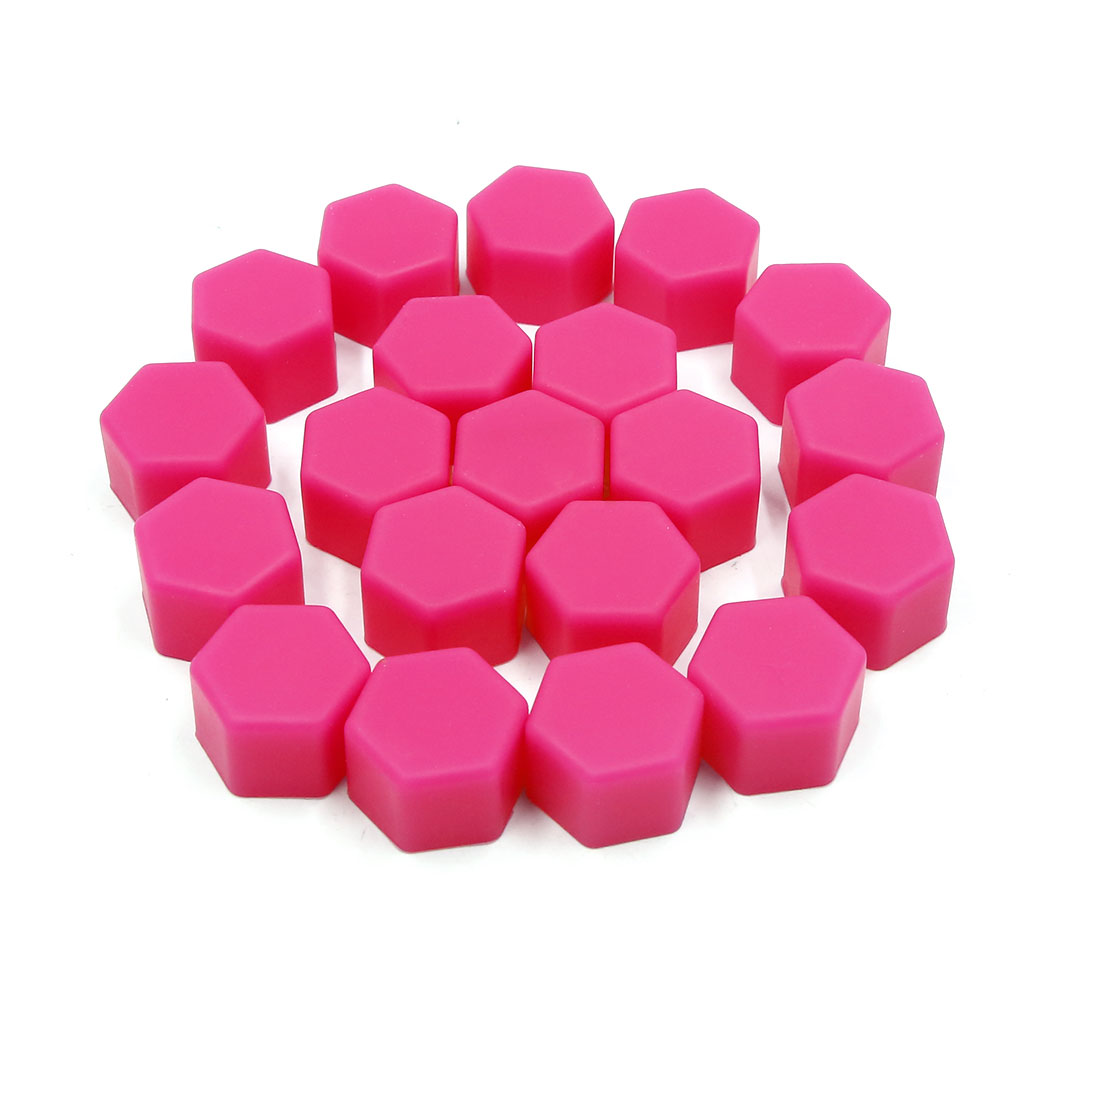 20pcs 19mm Rubber Car Wheel Tire Tyre Nut Screw Cover Caps Hub Protector Pink